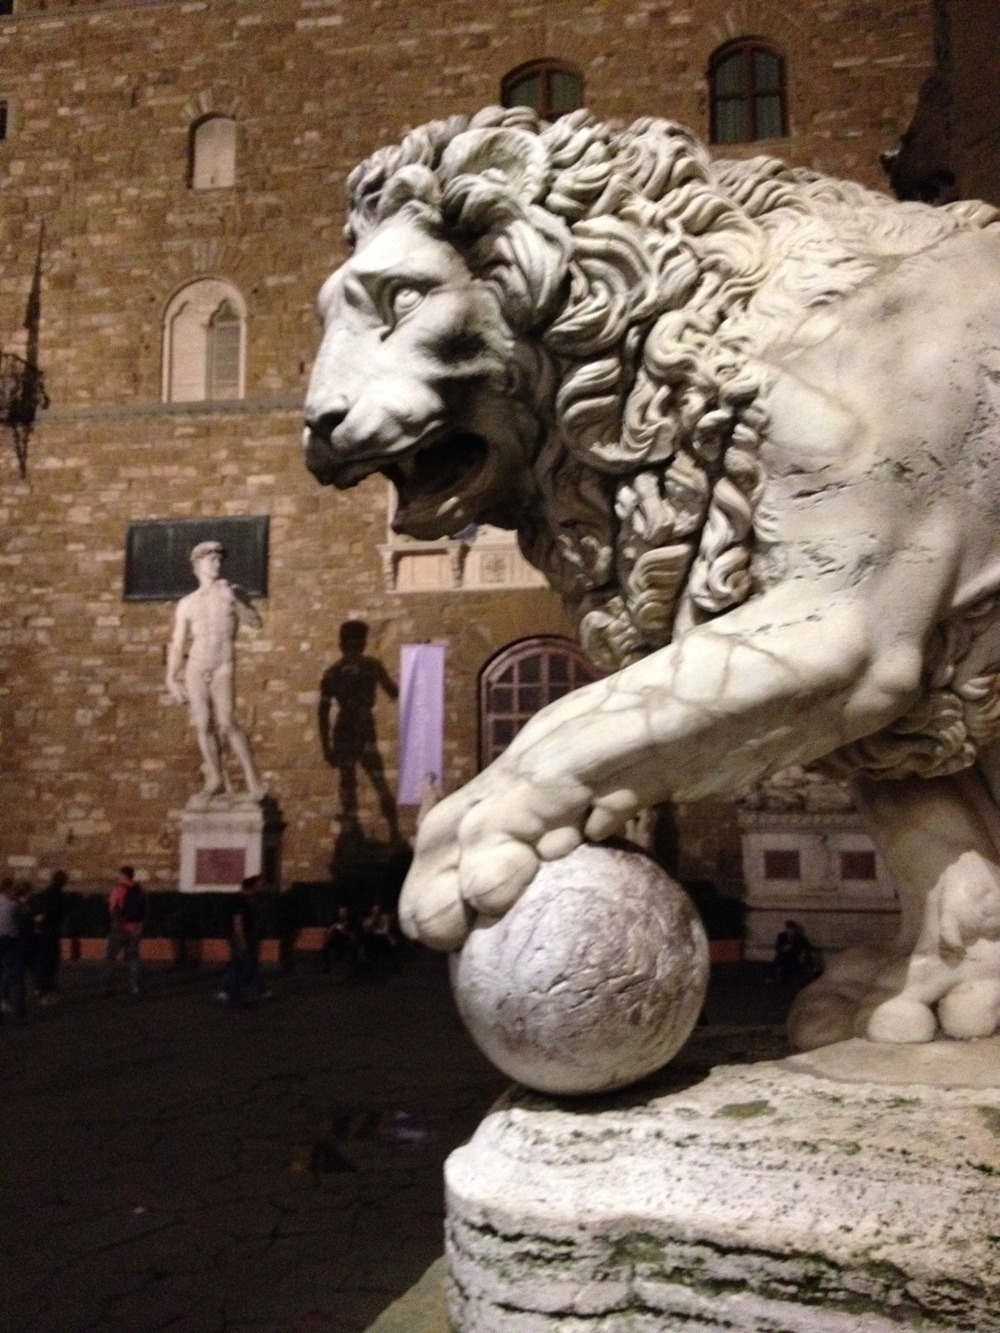 Medici Lion, one of two lions, one of which is an ancient lion from 200 AD that was removed from a relief, reworked and moved to the piazza, the other was commissioned in 1594 by Vacca.